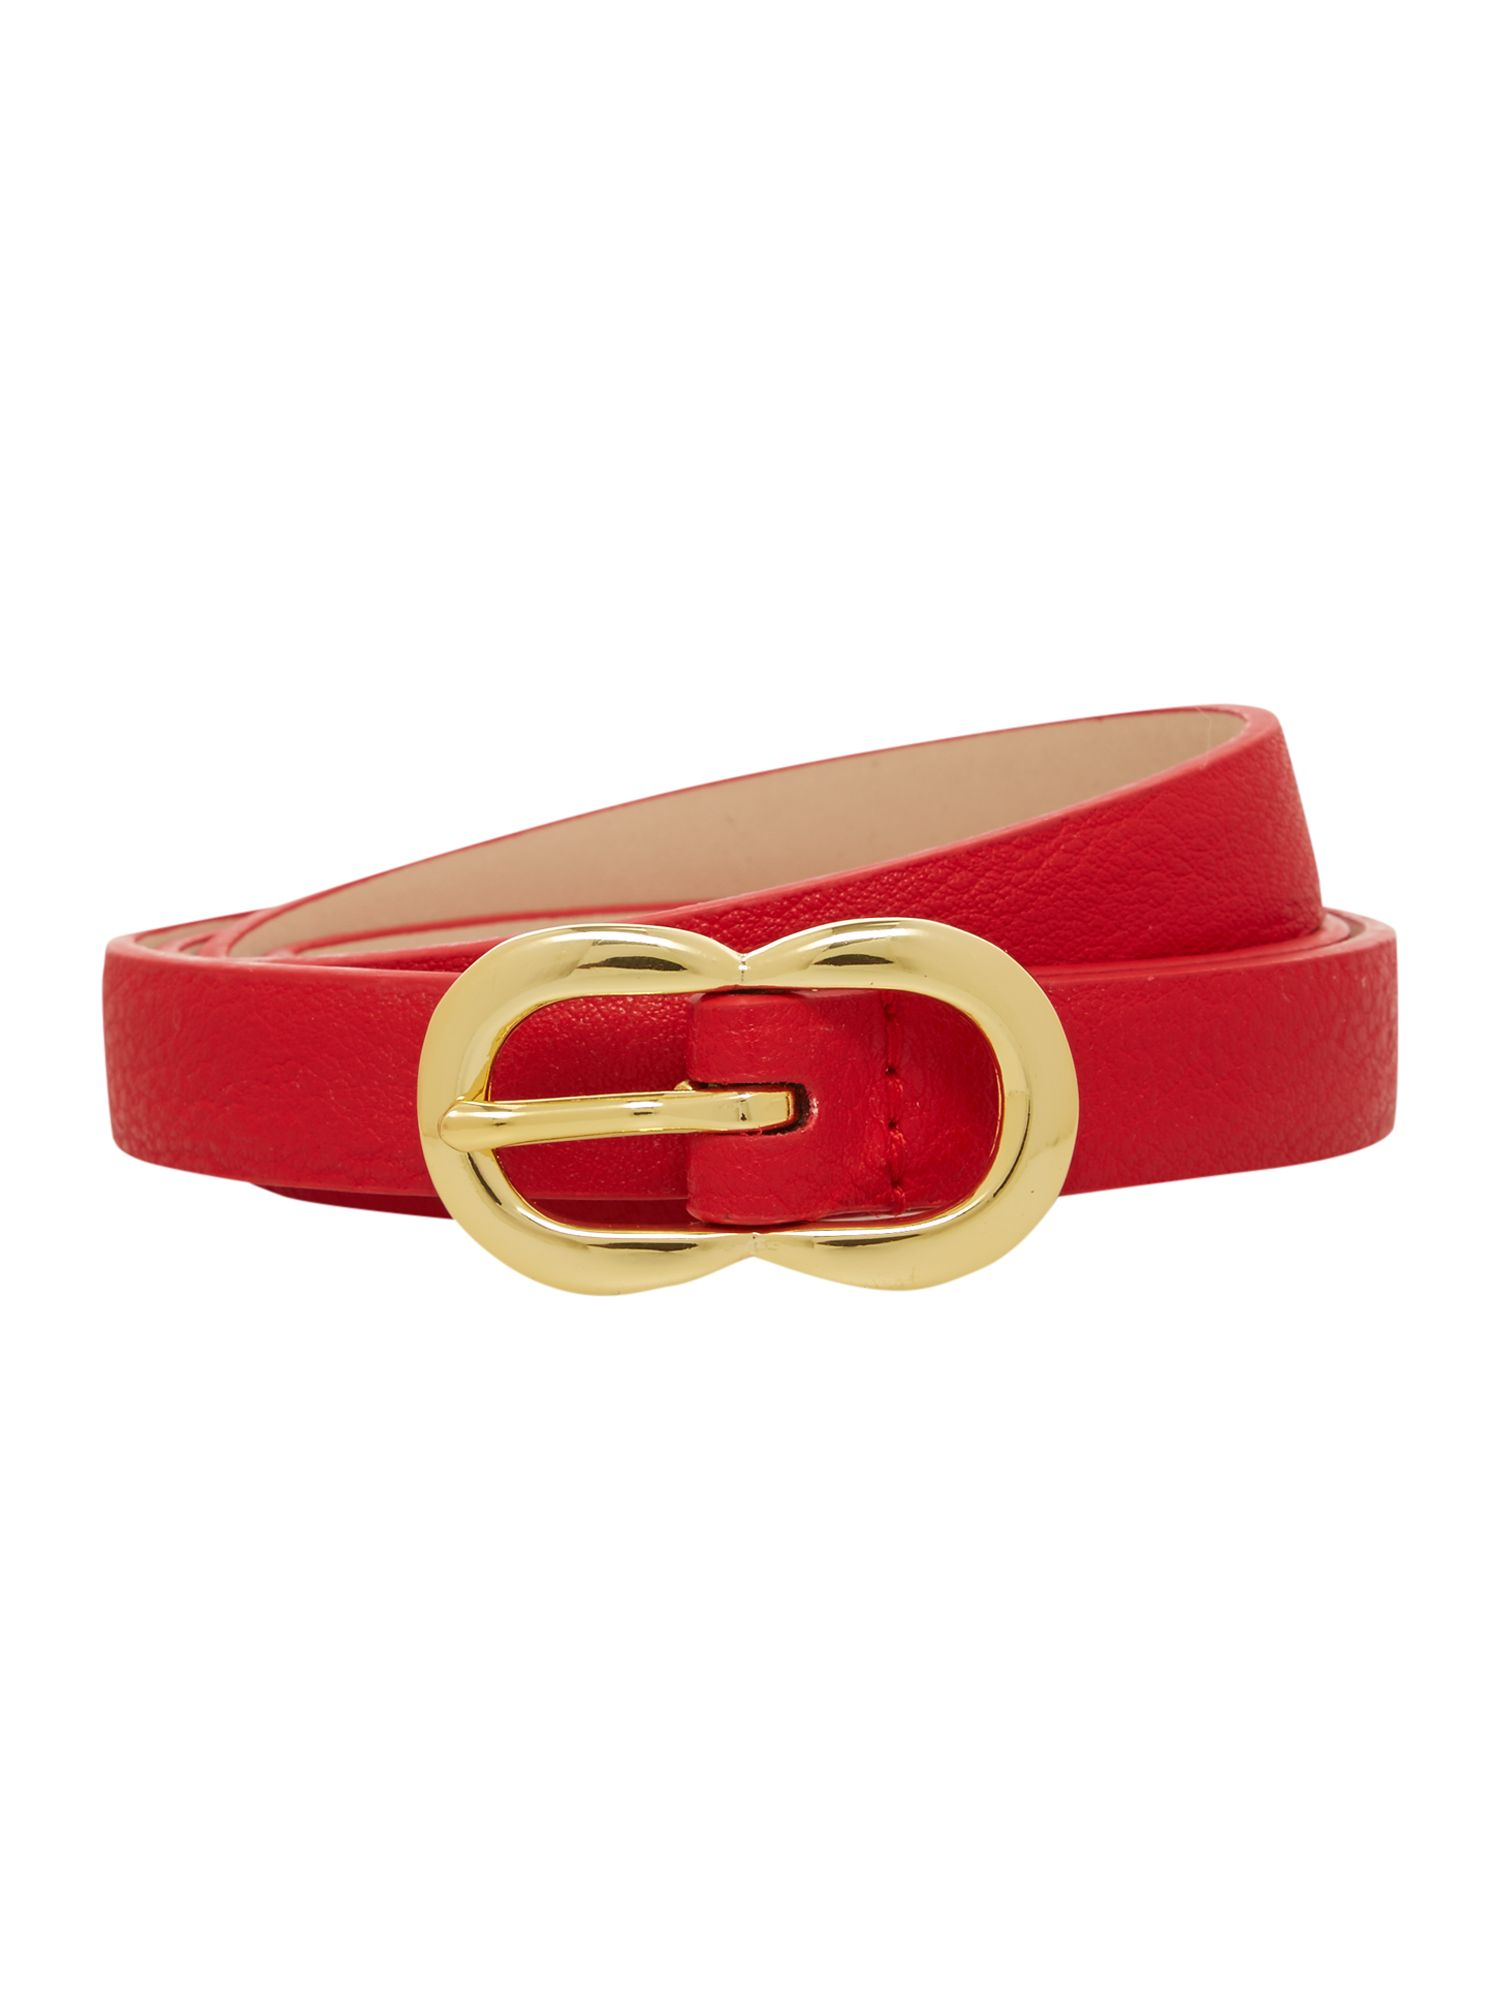 Red double buckle leather belt